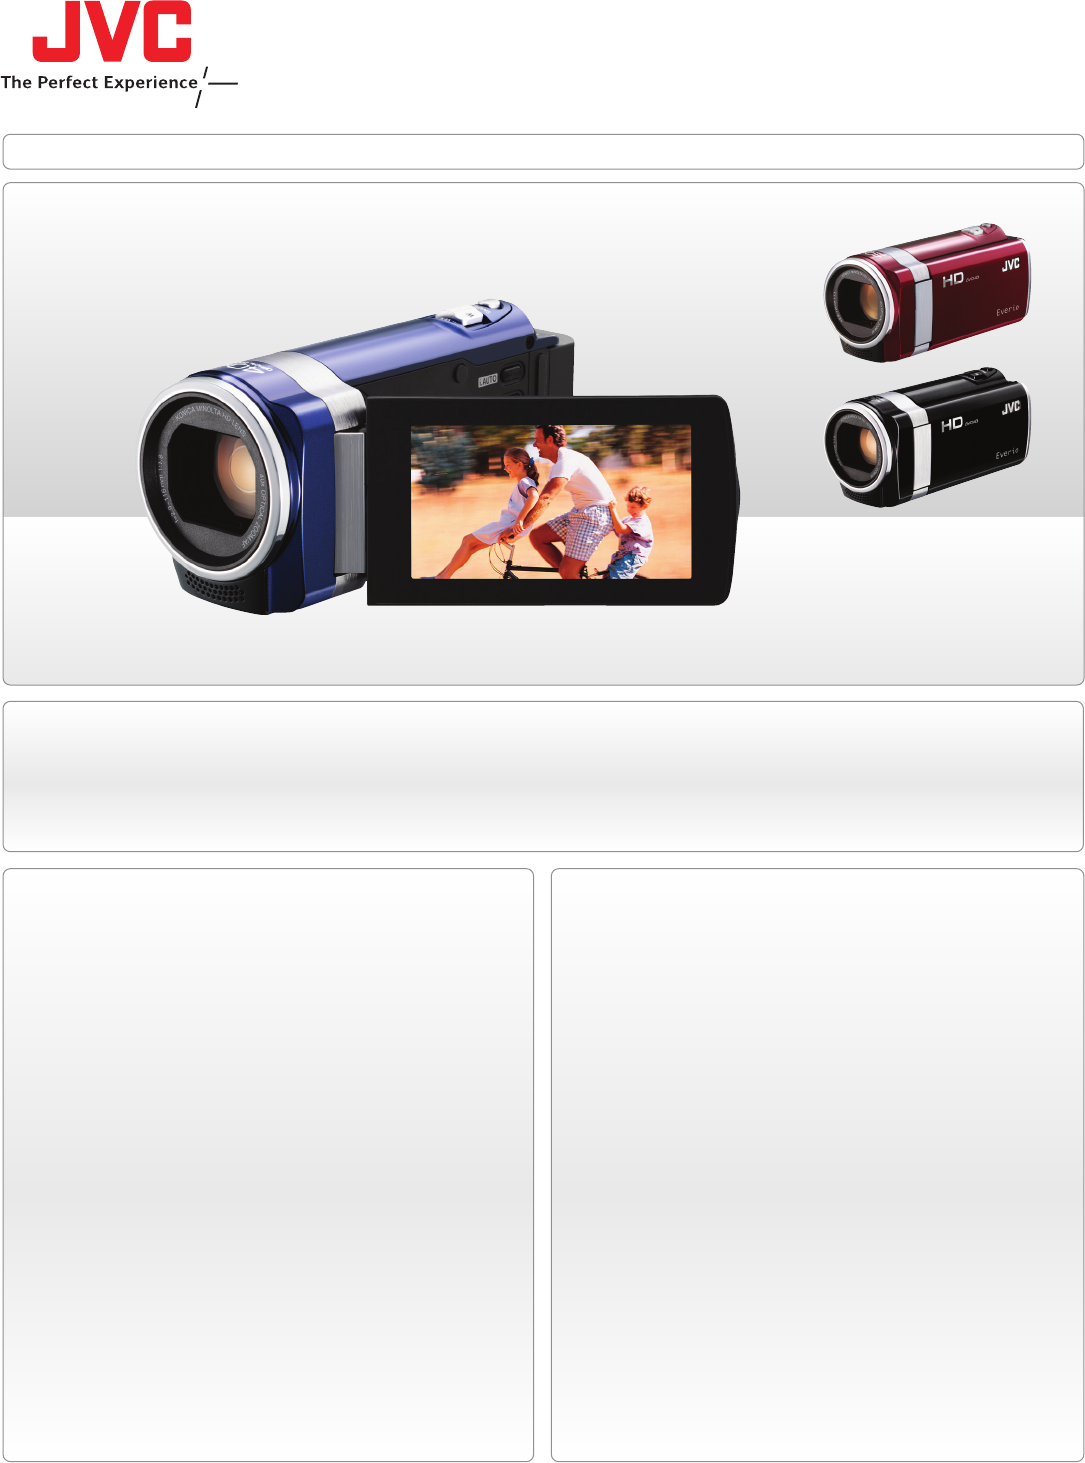 JVC hd everio flash memory camera Camcorder User Manual